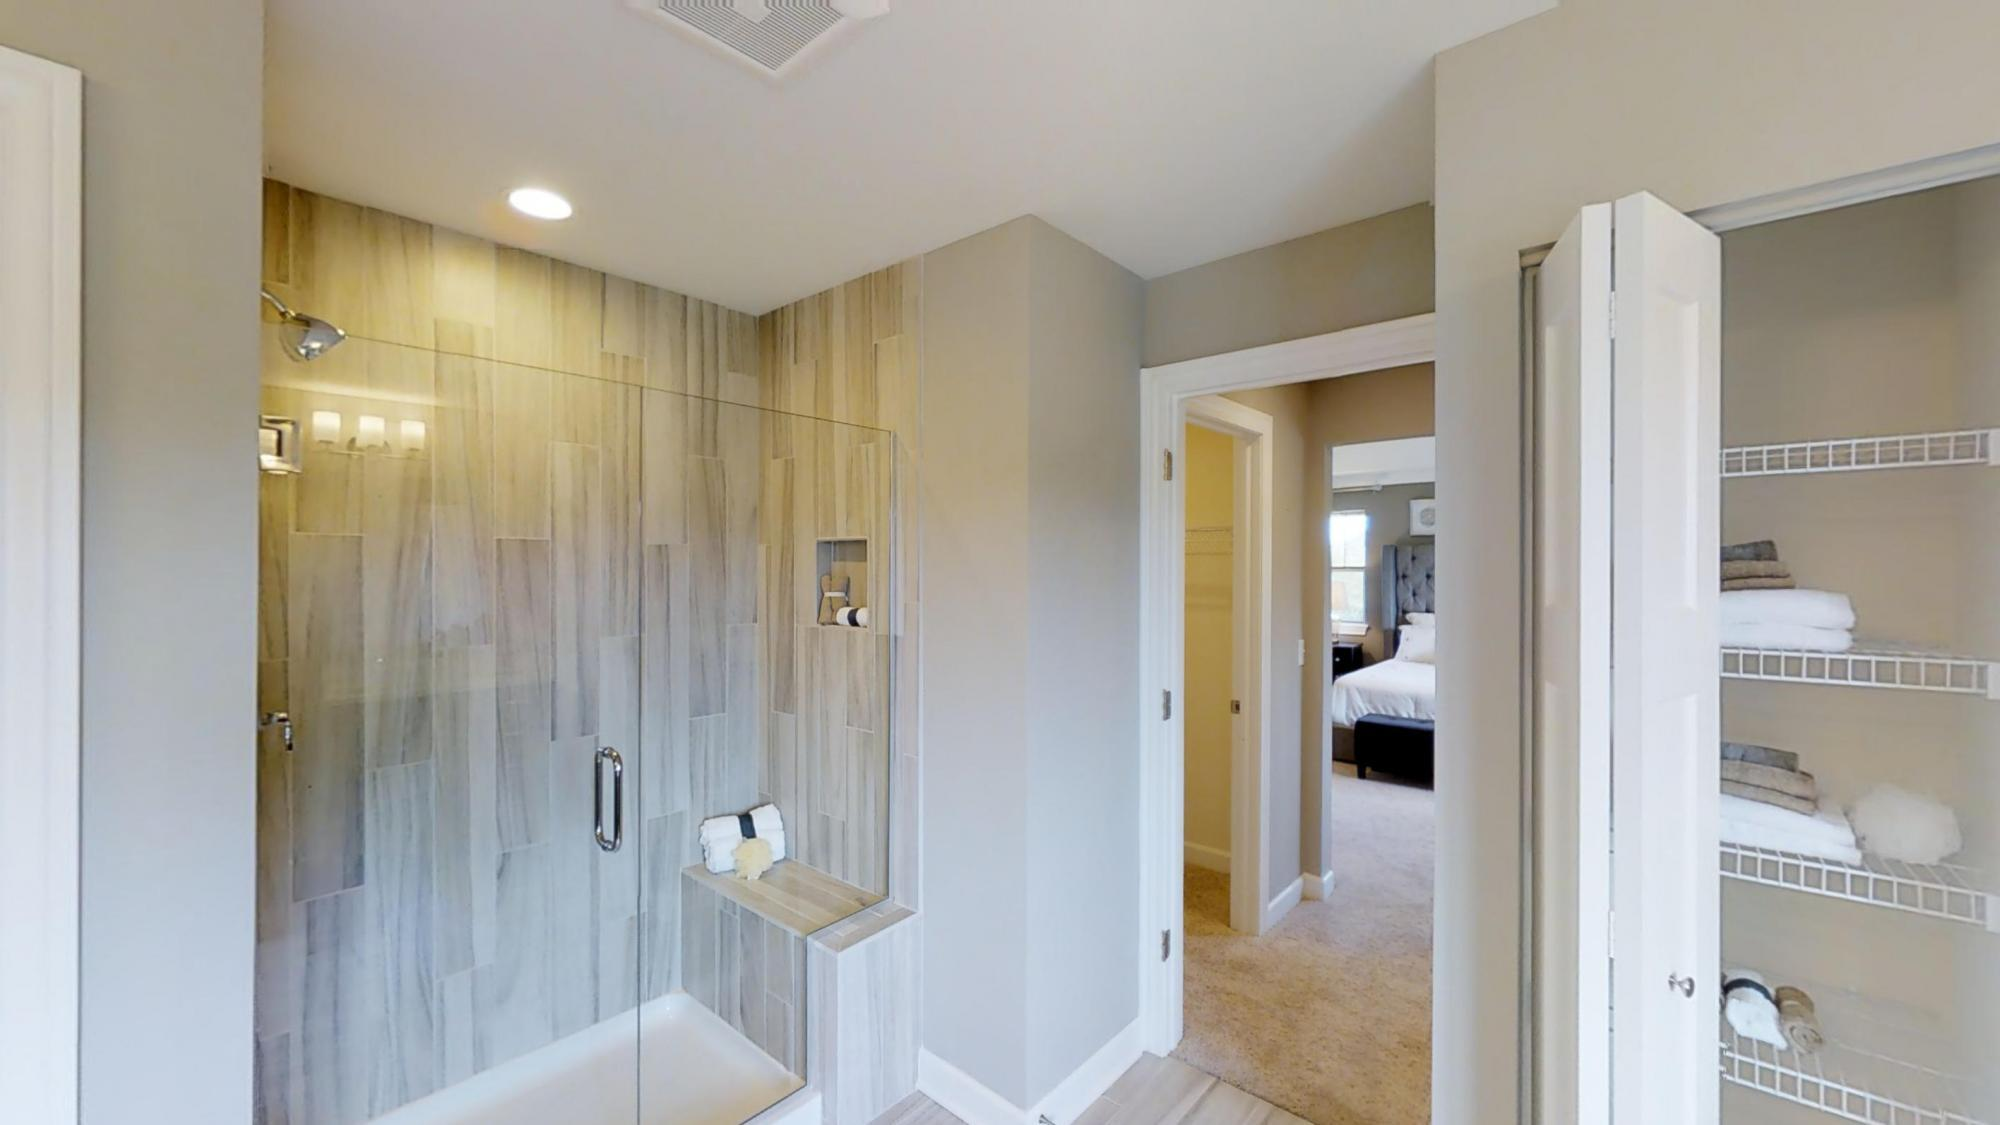 Bathroom featured in the Jericho II By William Ryan Homes in Chicago, IL